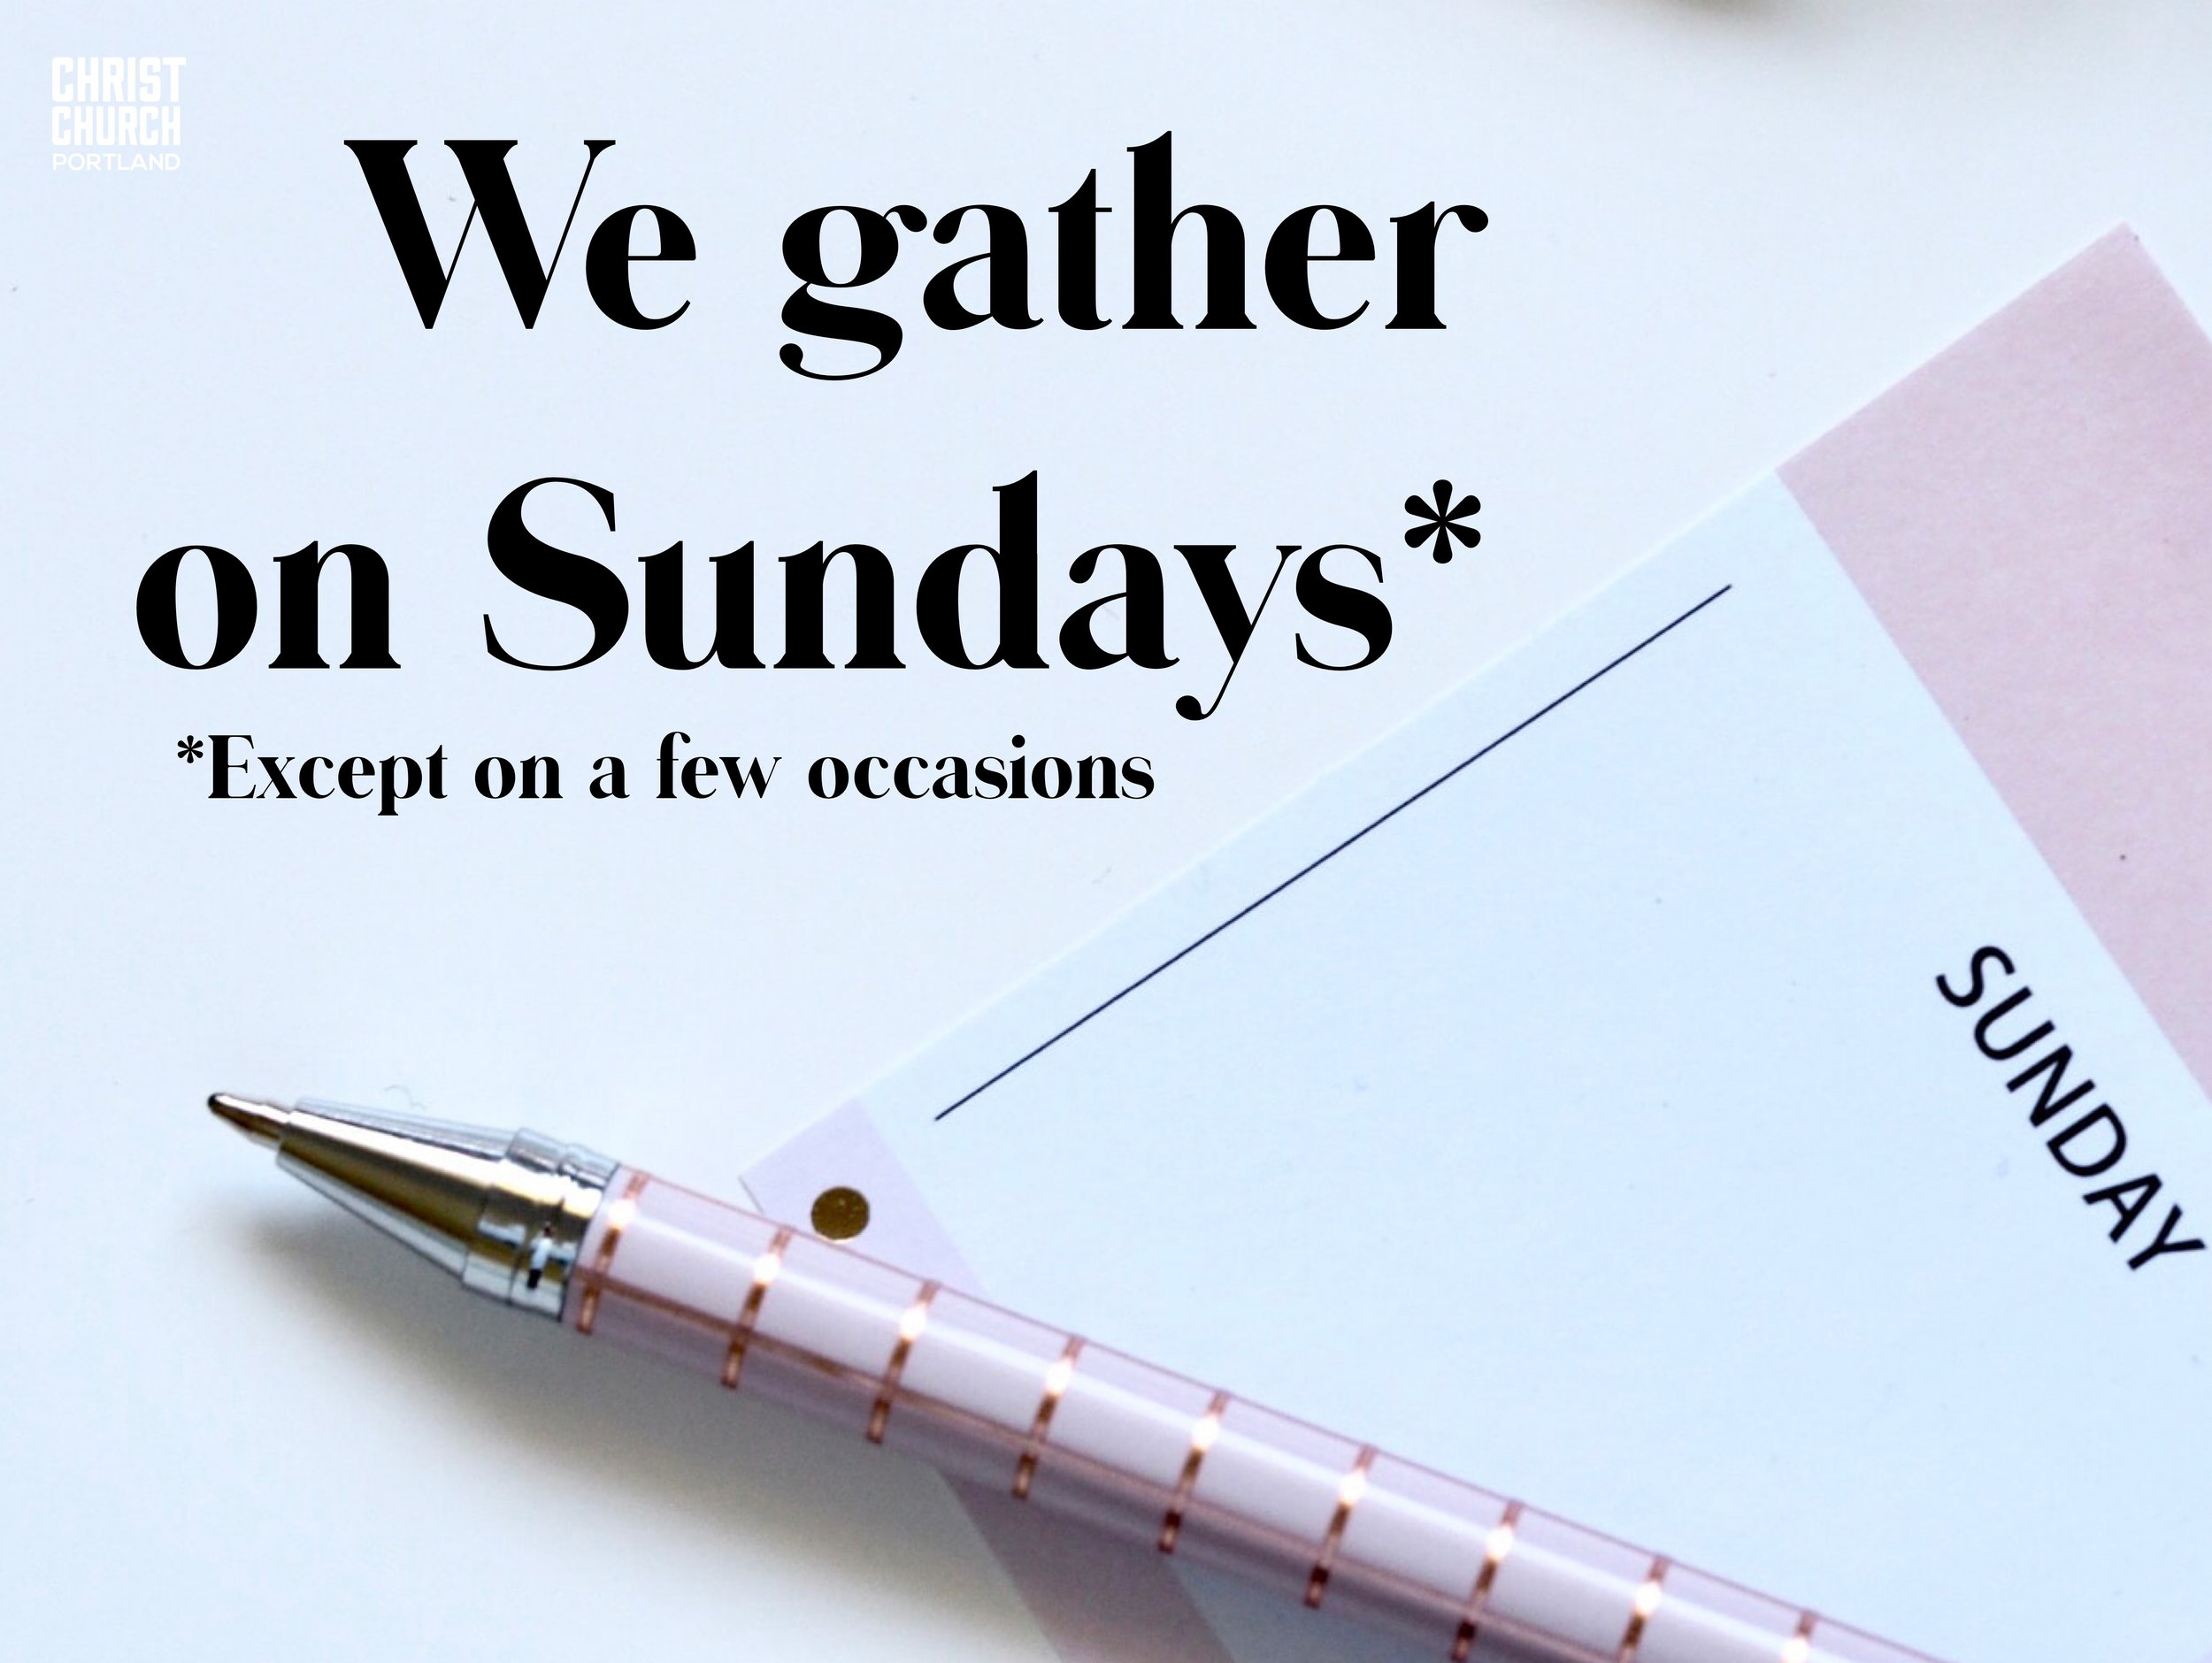 we gather on sundays asteris:Users:adamphillips:Downloads:we gather on sundays asterisk.JPGk.JPG